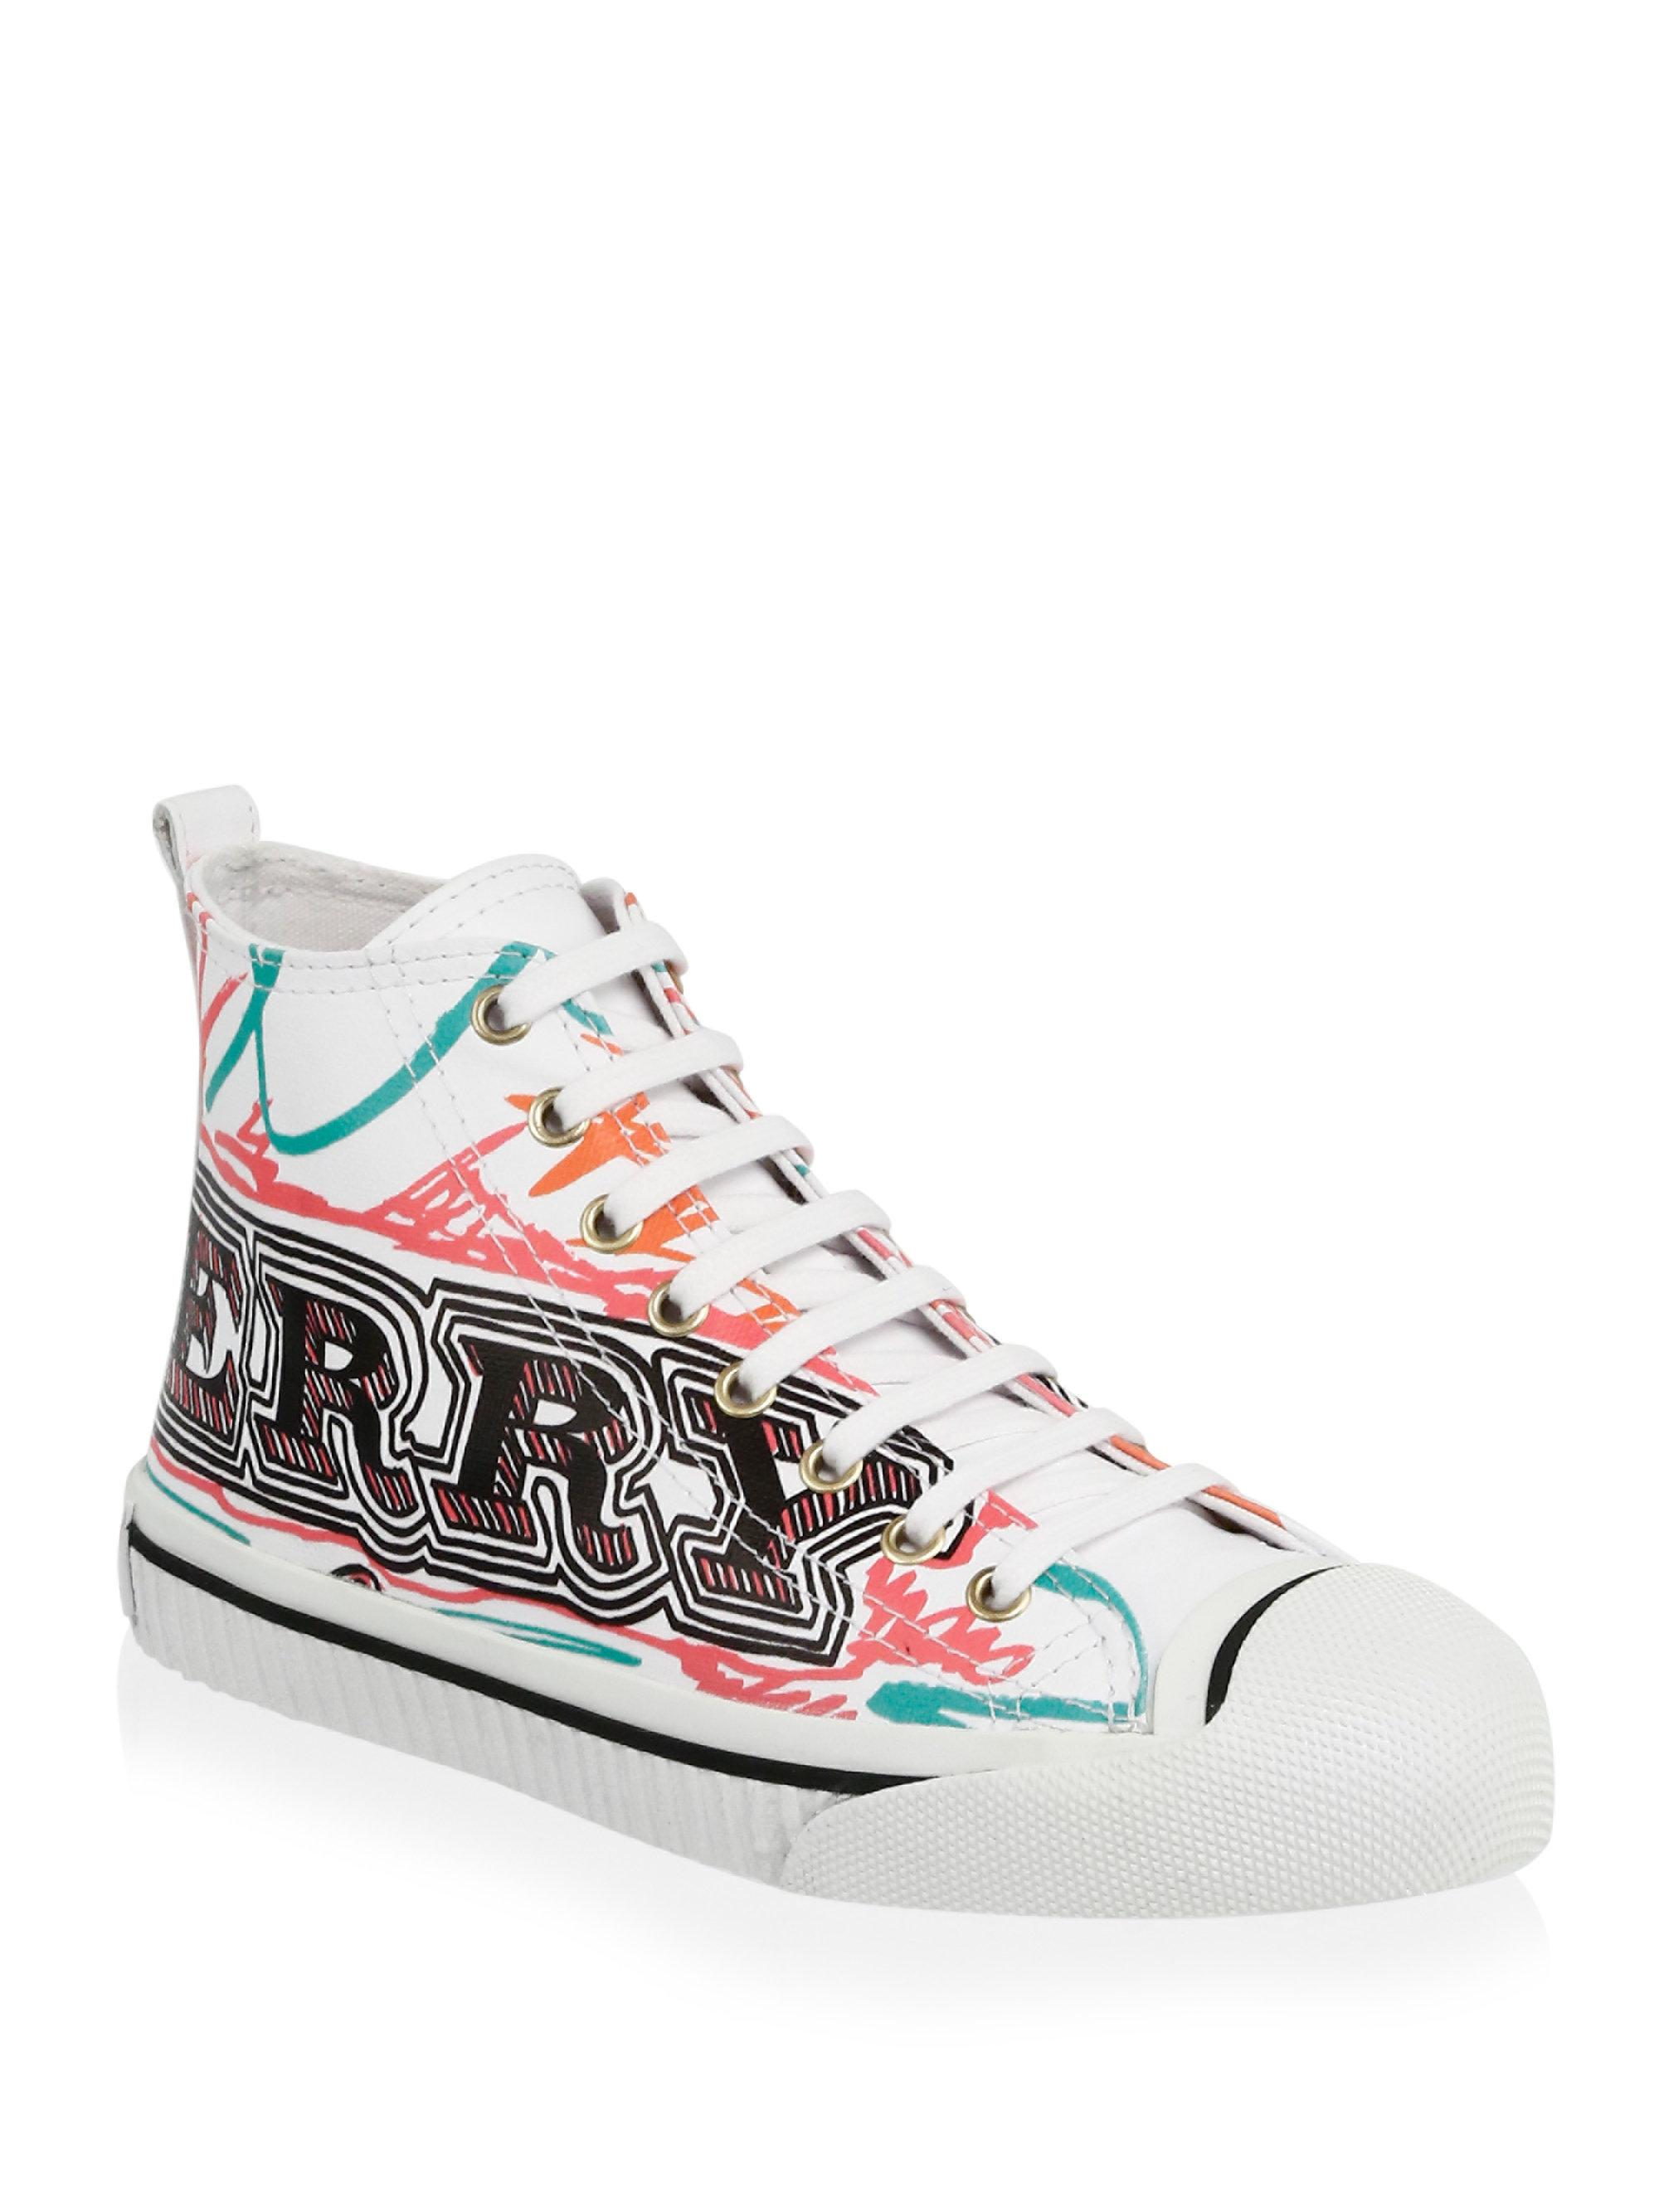 Lyst - Burberry Kingly Doodle Print High-top Sneaker in White 452cc05929a